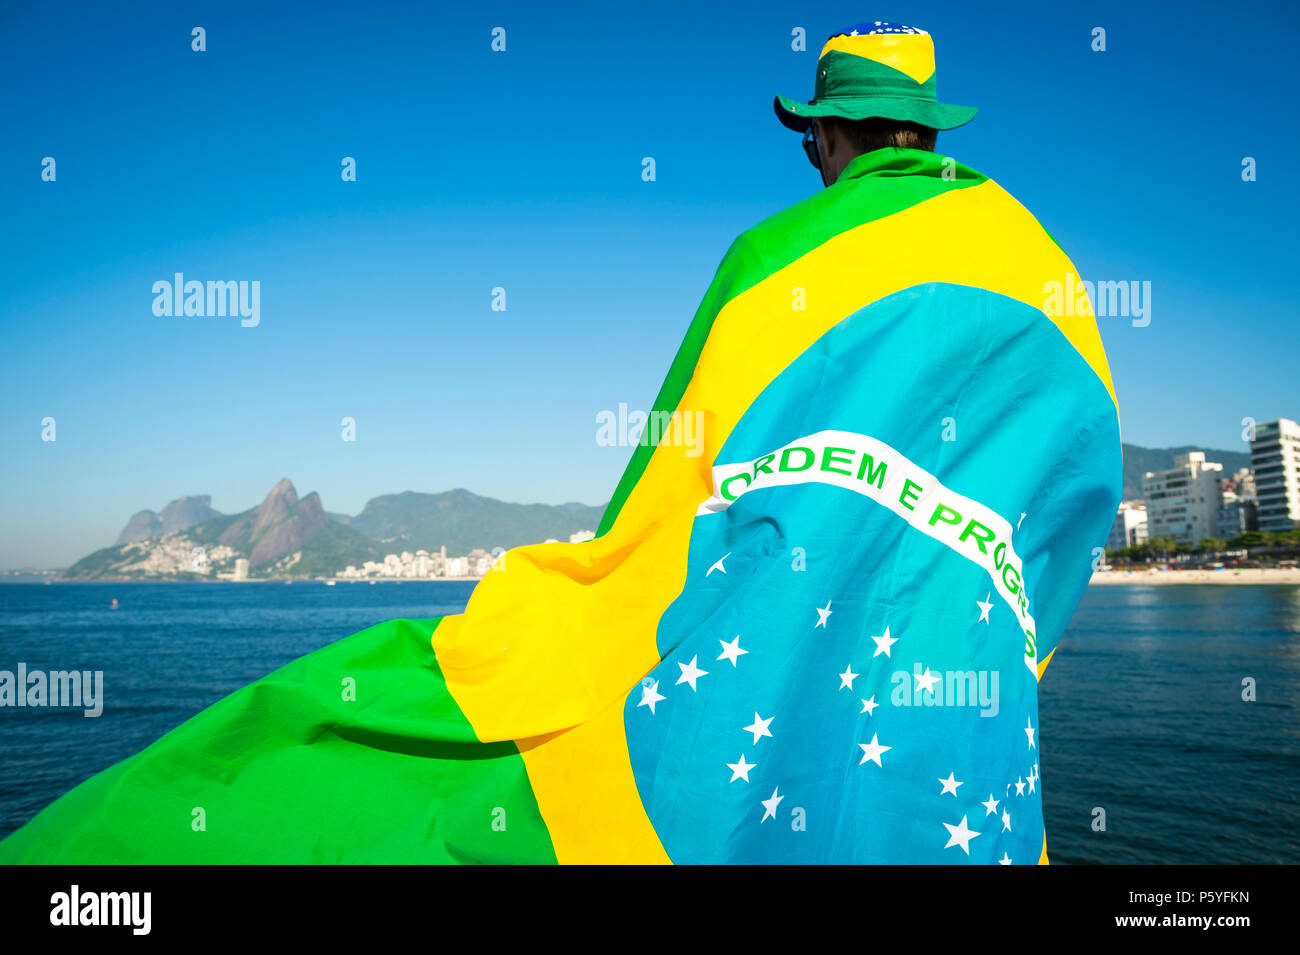 Brazilian football fan wrapped in giant flag and hat in front of Ipanema  Beach city skyline Rio de Janeiro. 9a7388eb00a